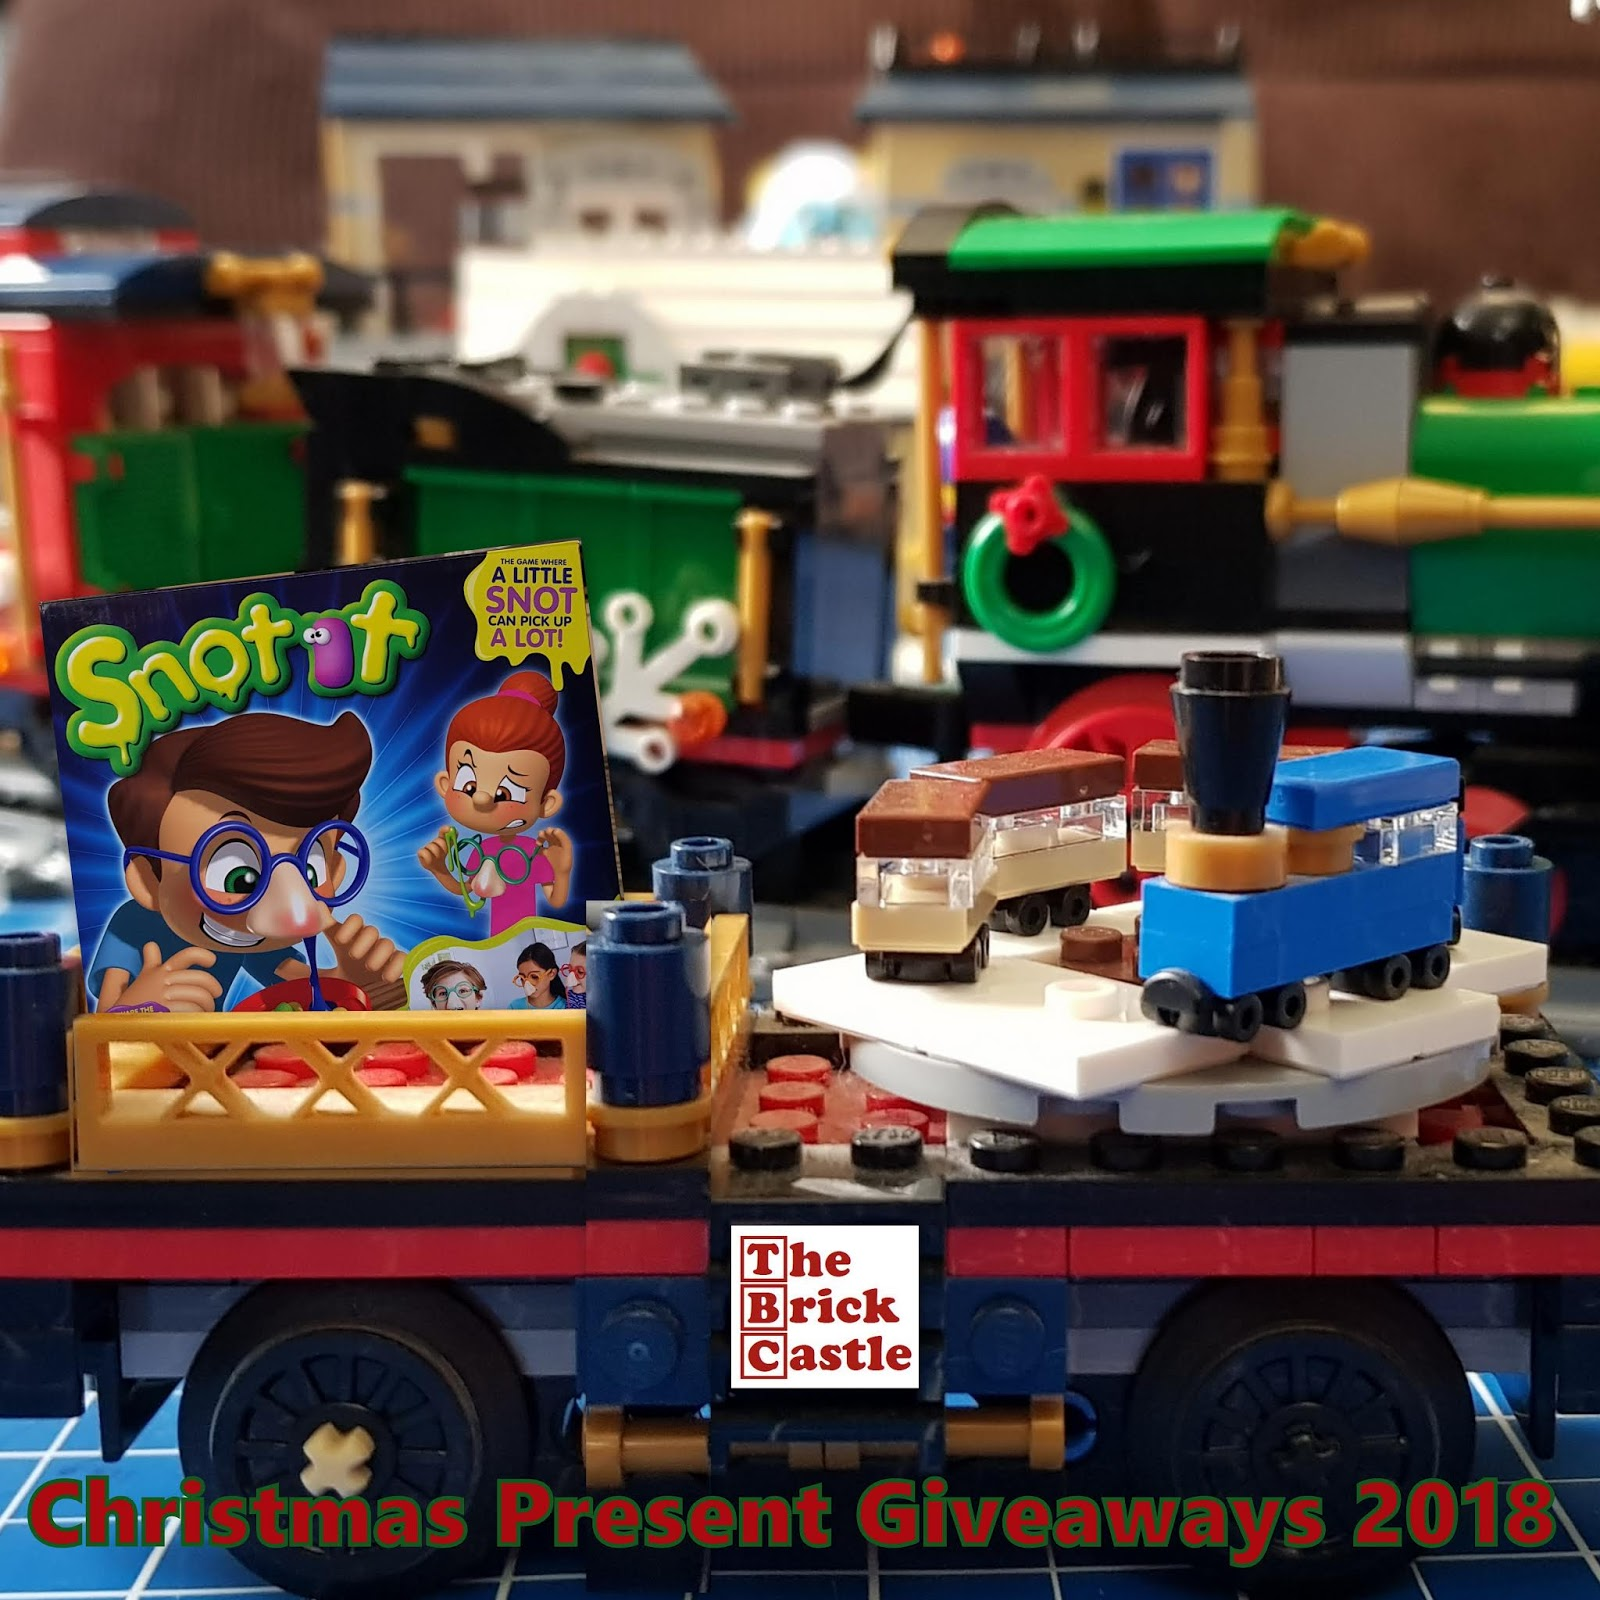 511edeafea1 KD Games have also offered a copy of Snot It as a Christmas Present for one  of my readers. Entry to the giveaway is by Gleam form below.